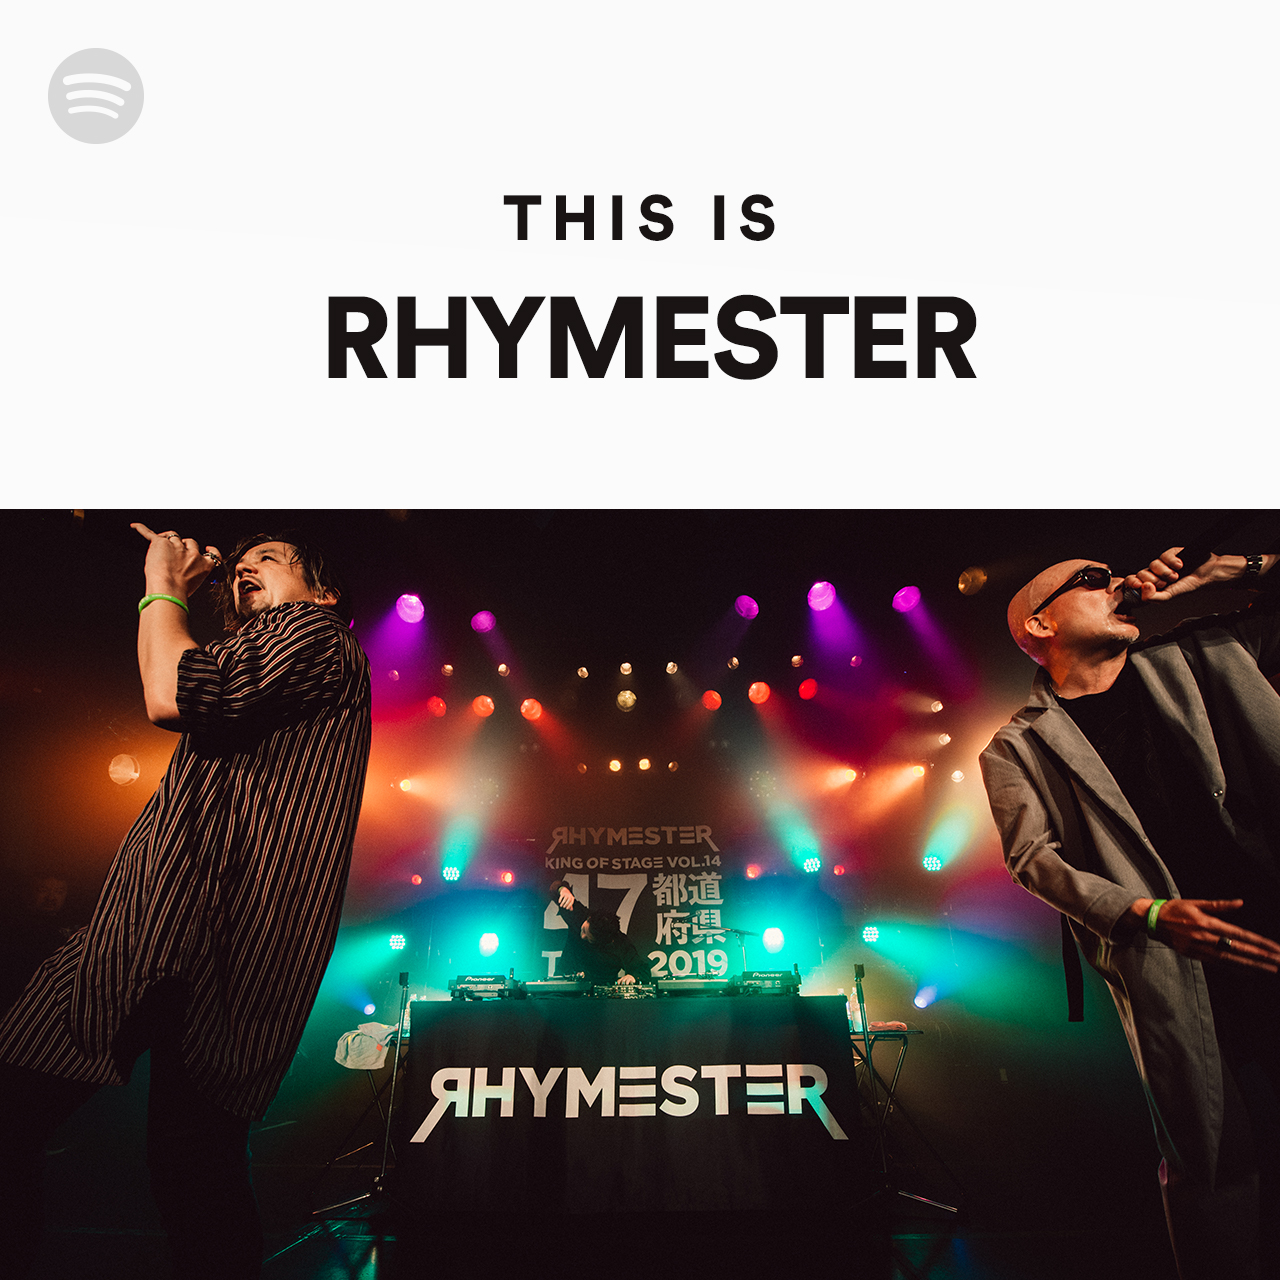 This Is RHYMESTERのサムネイル